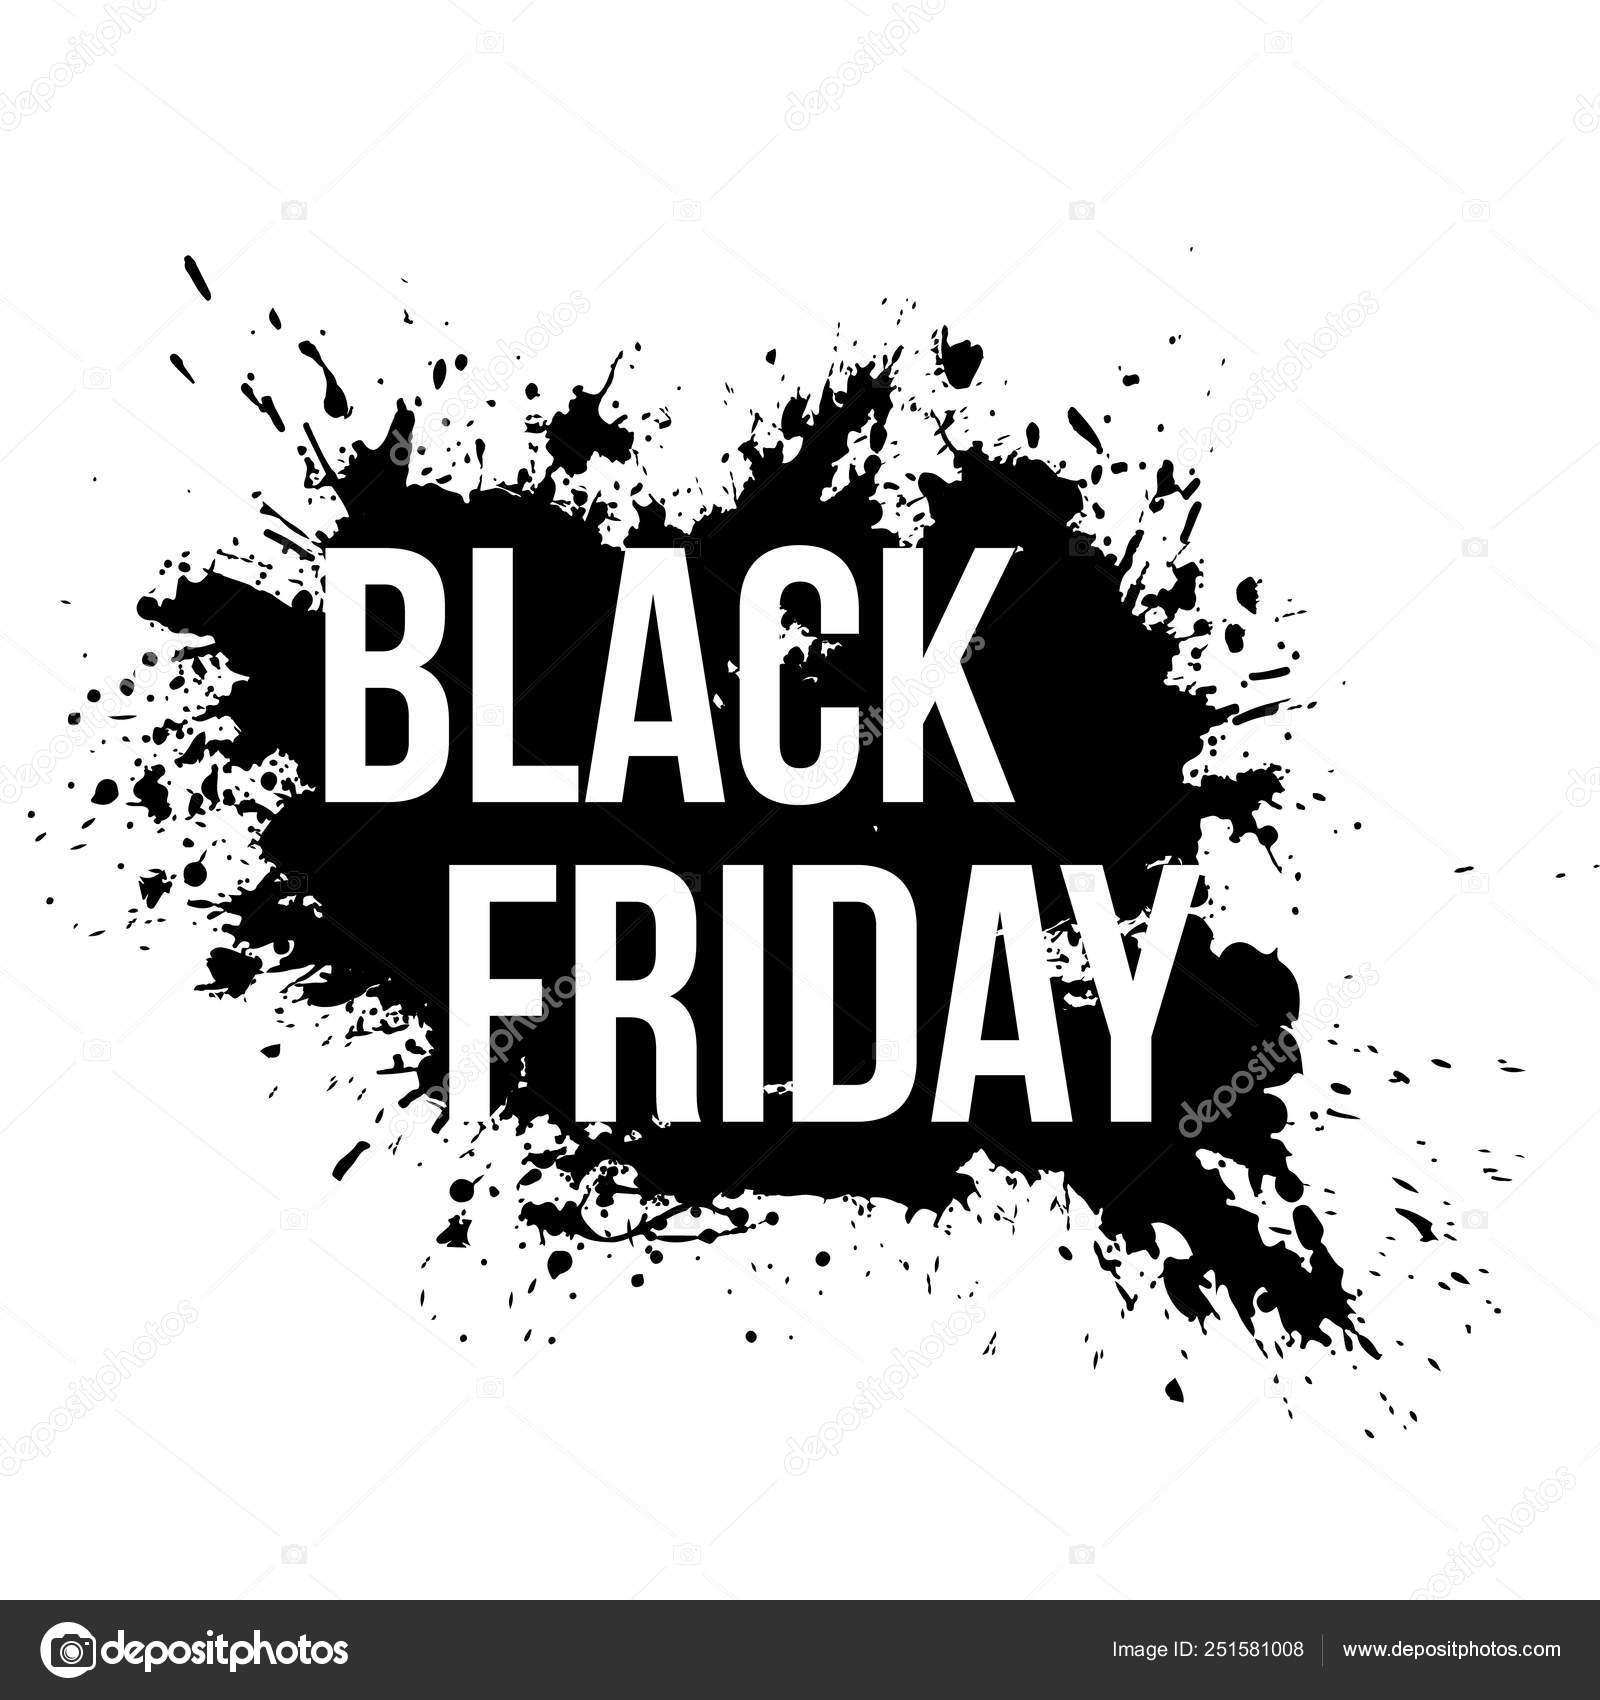 Black Friday Sale Grunge Banner With Black Paint Splashes On White Background Stock Vector C Yotor 251581008